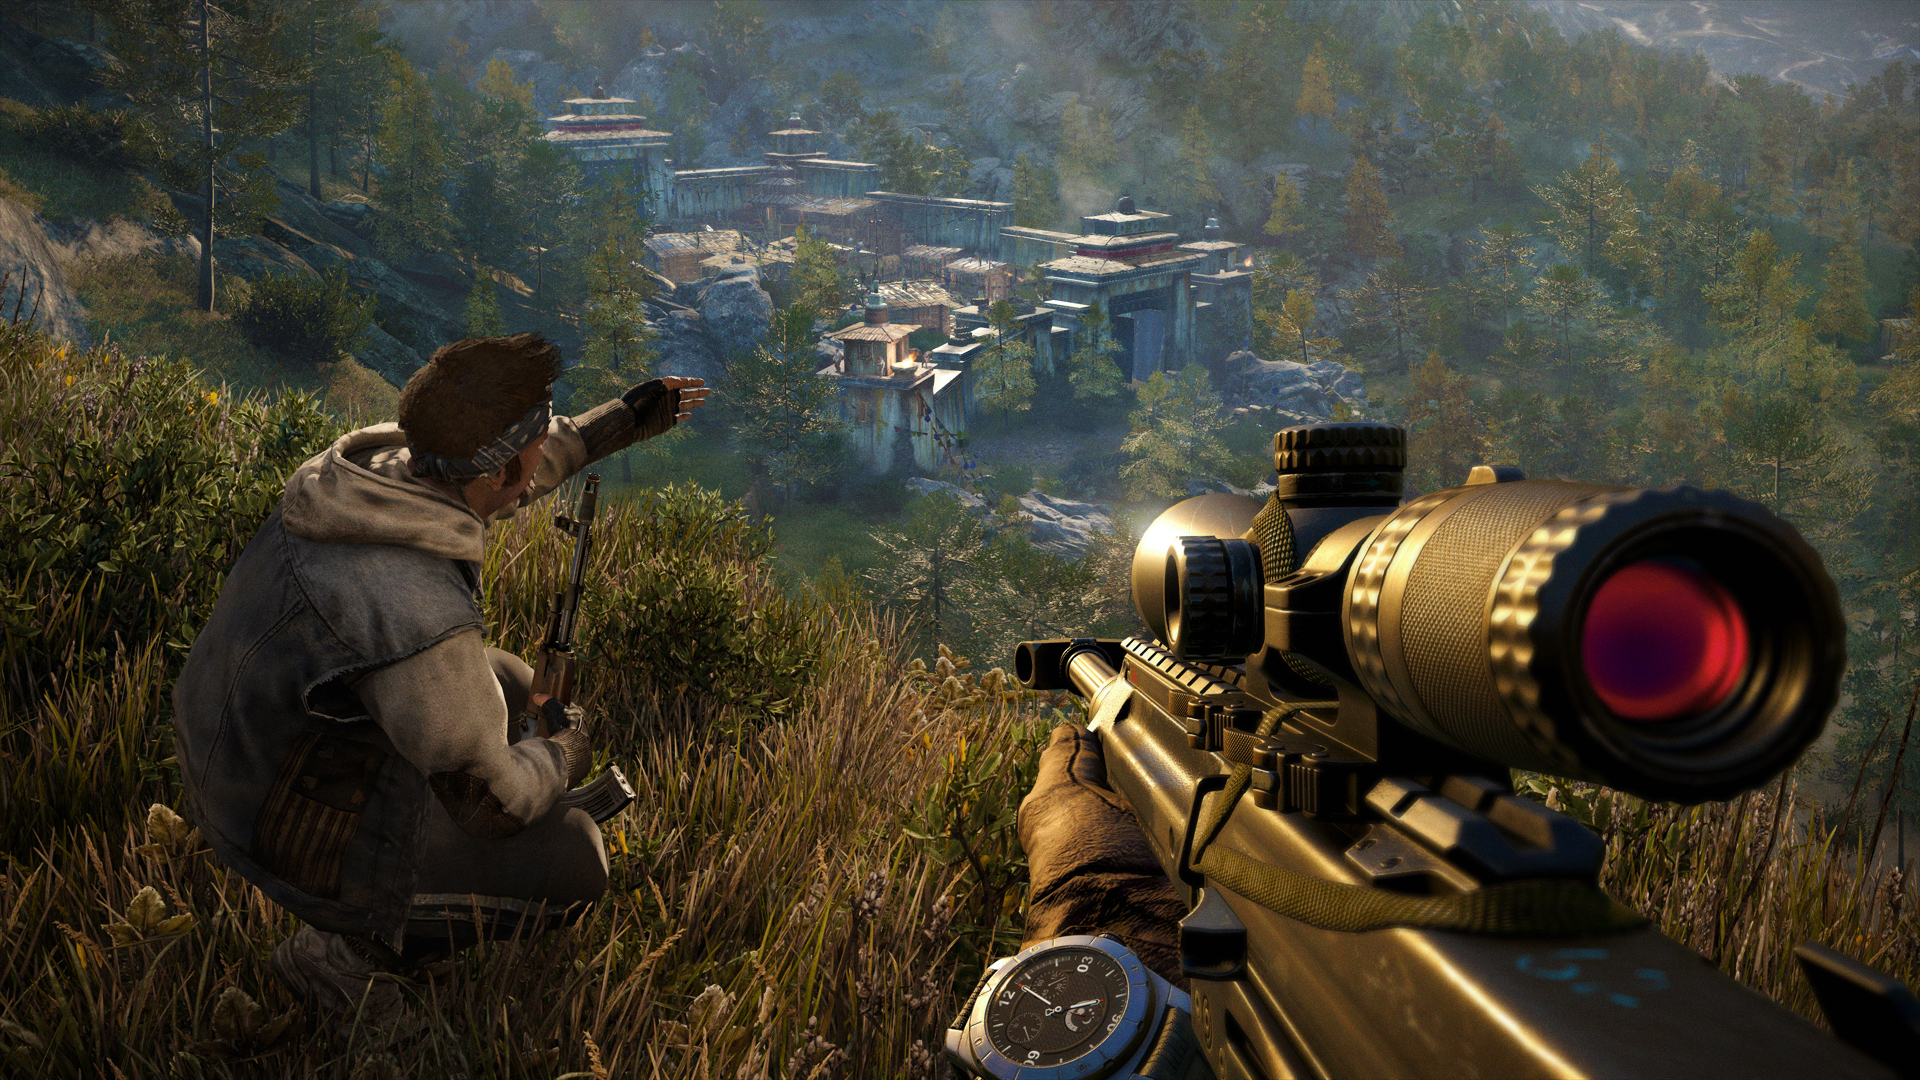 Leaked Image Reveals Far Cry 4's Map And Details Including